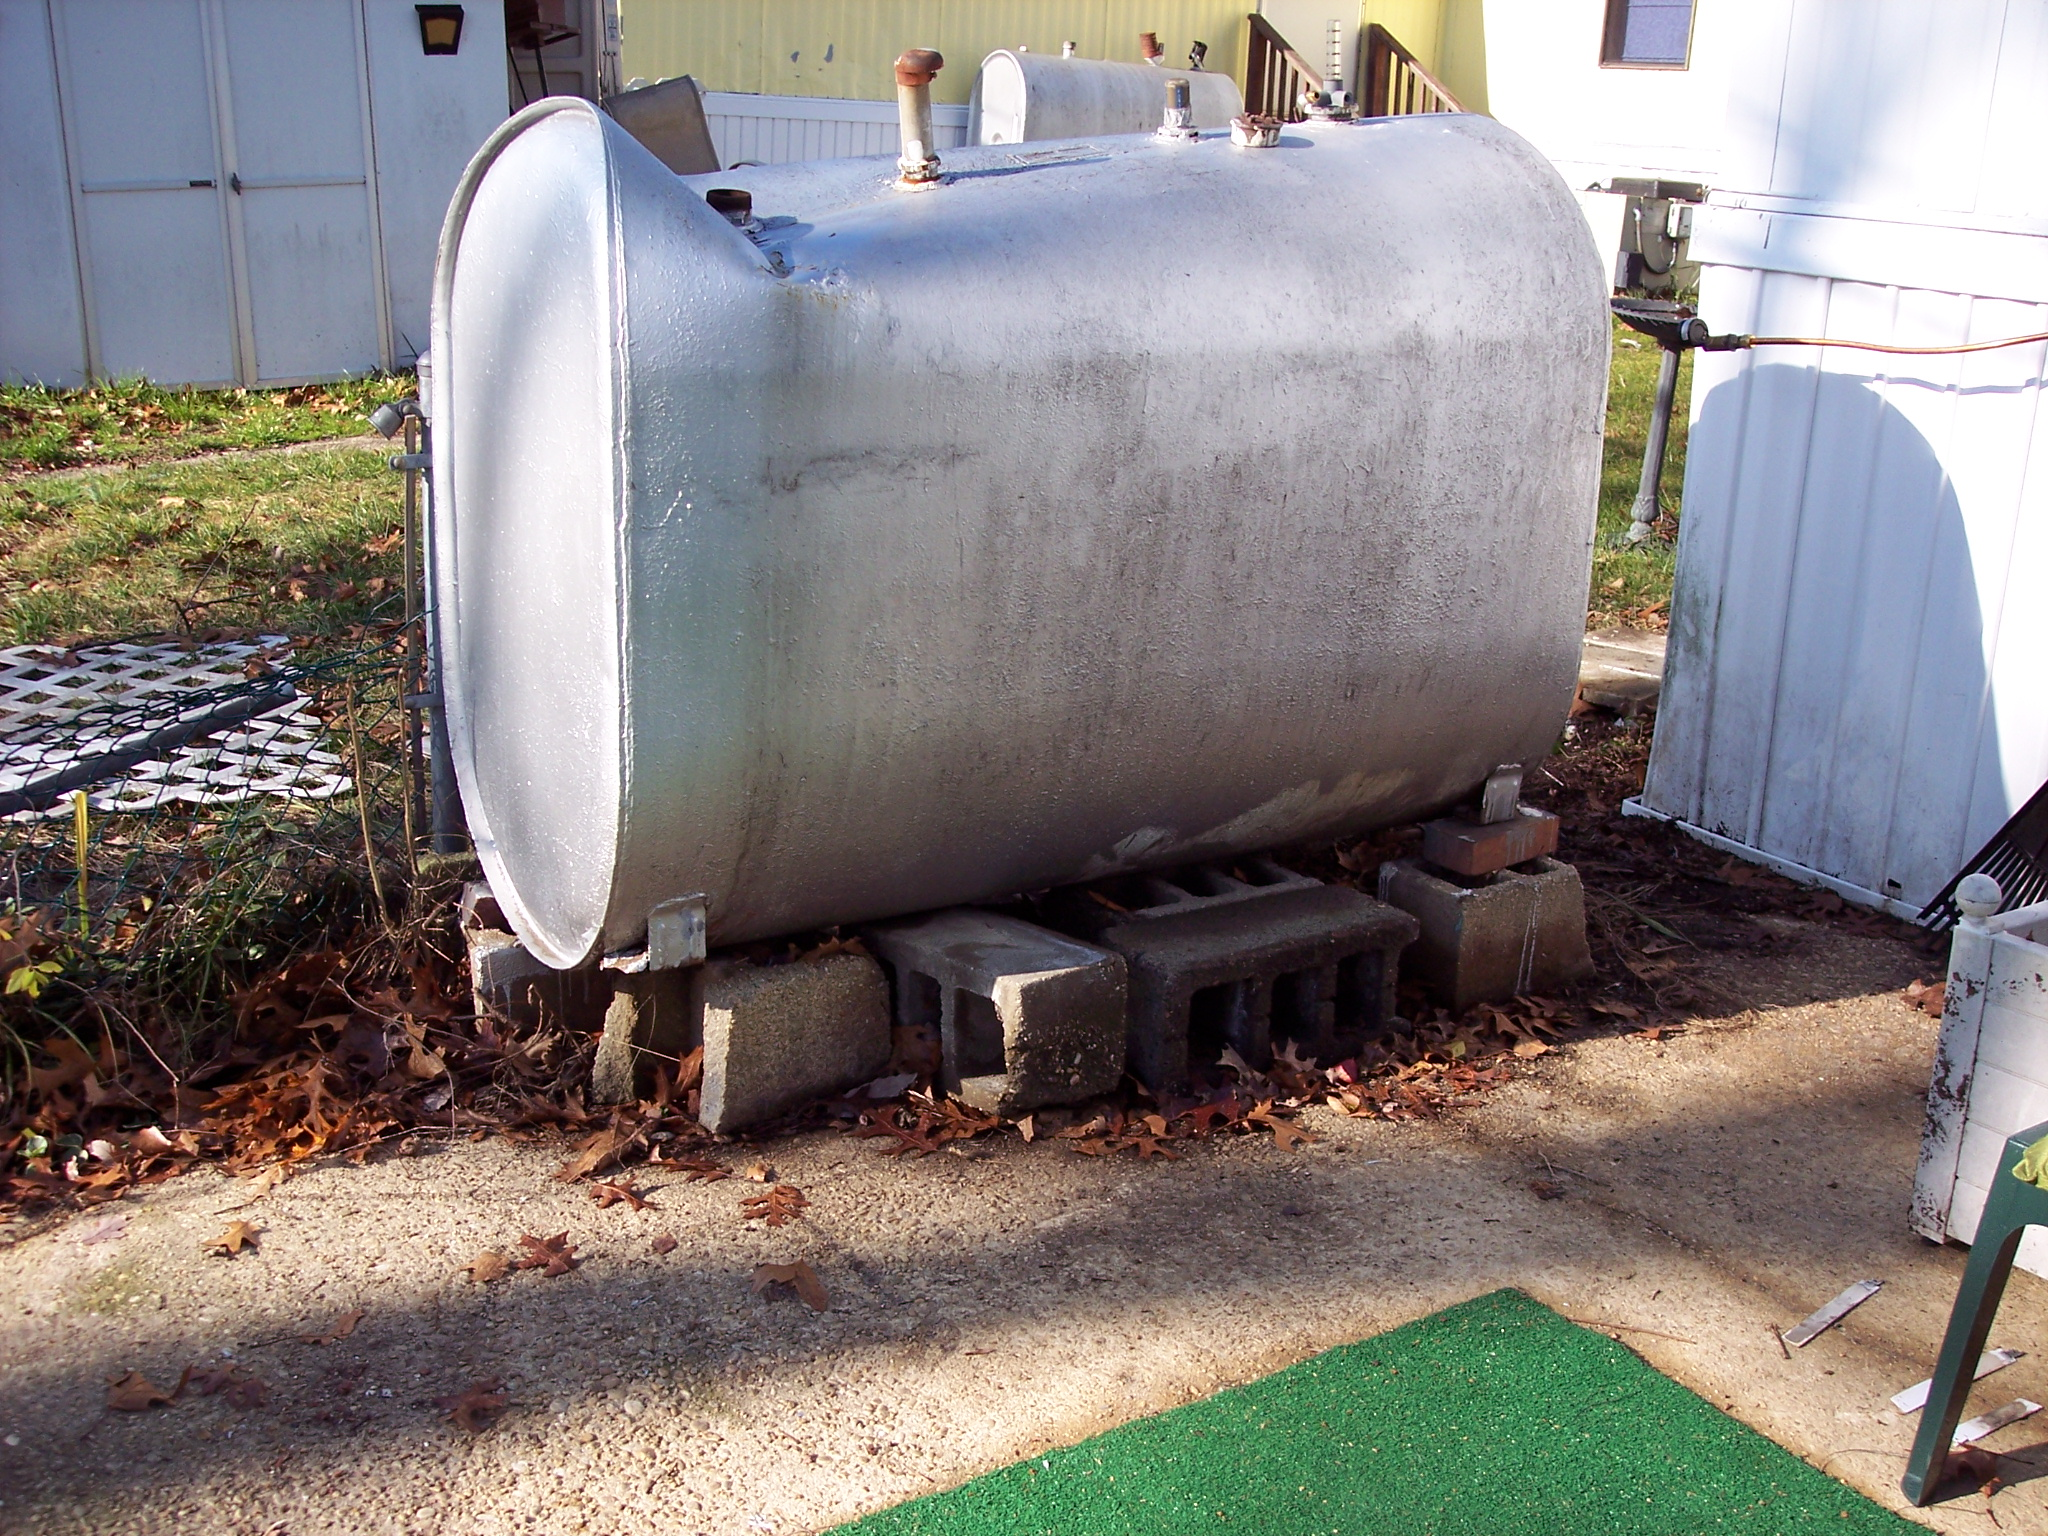 How long does an Oil Tank Last?